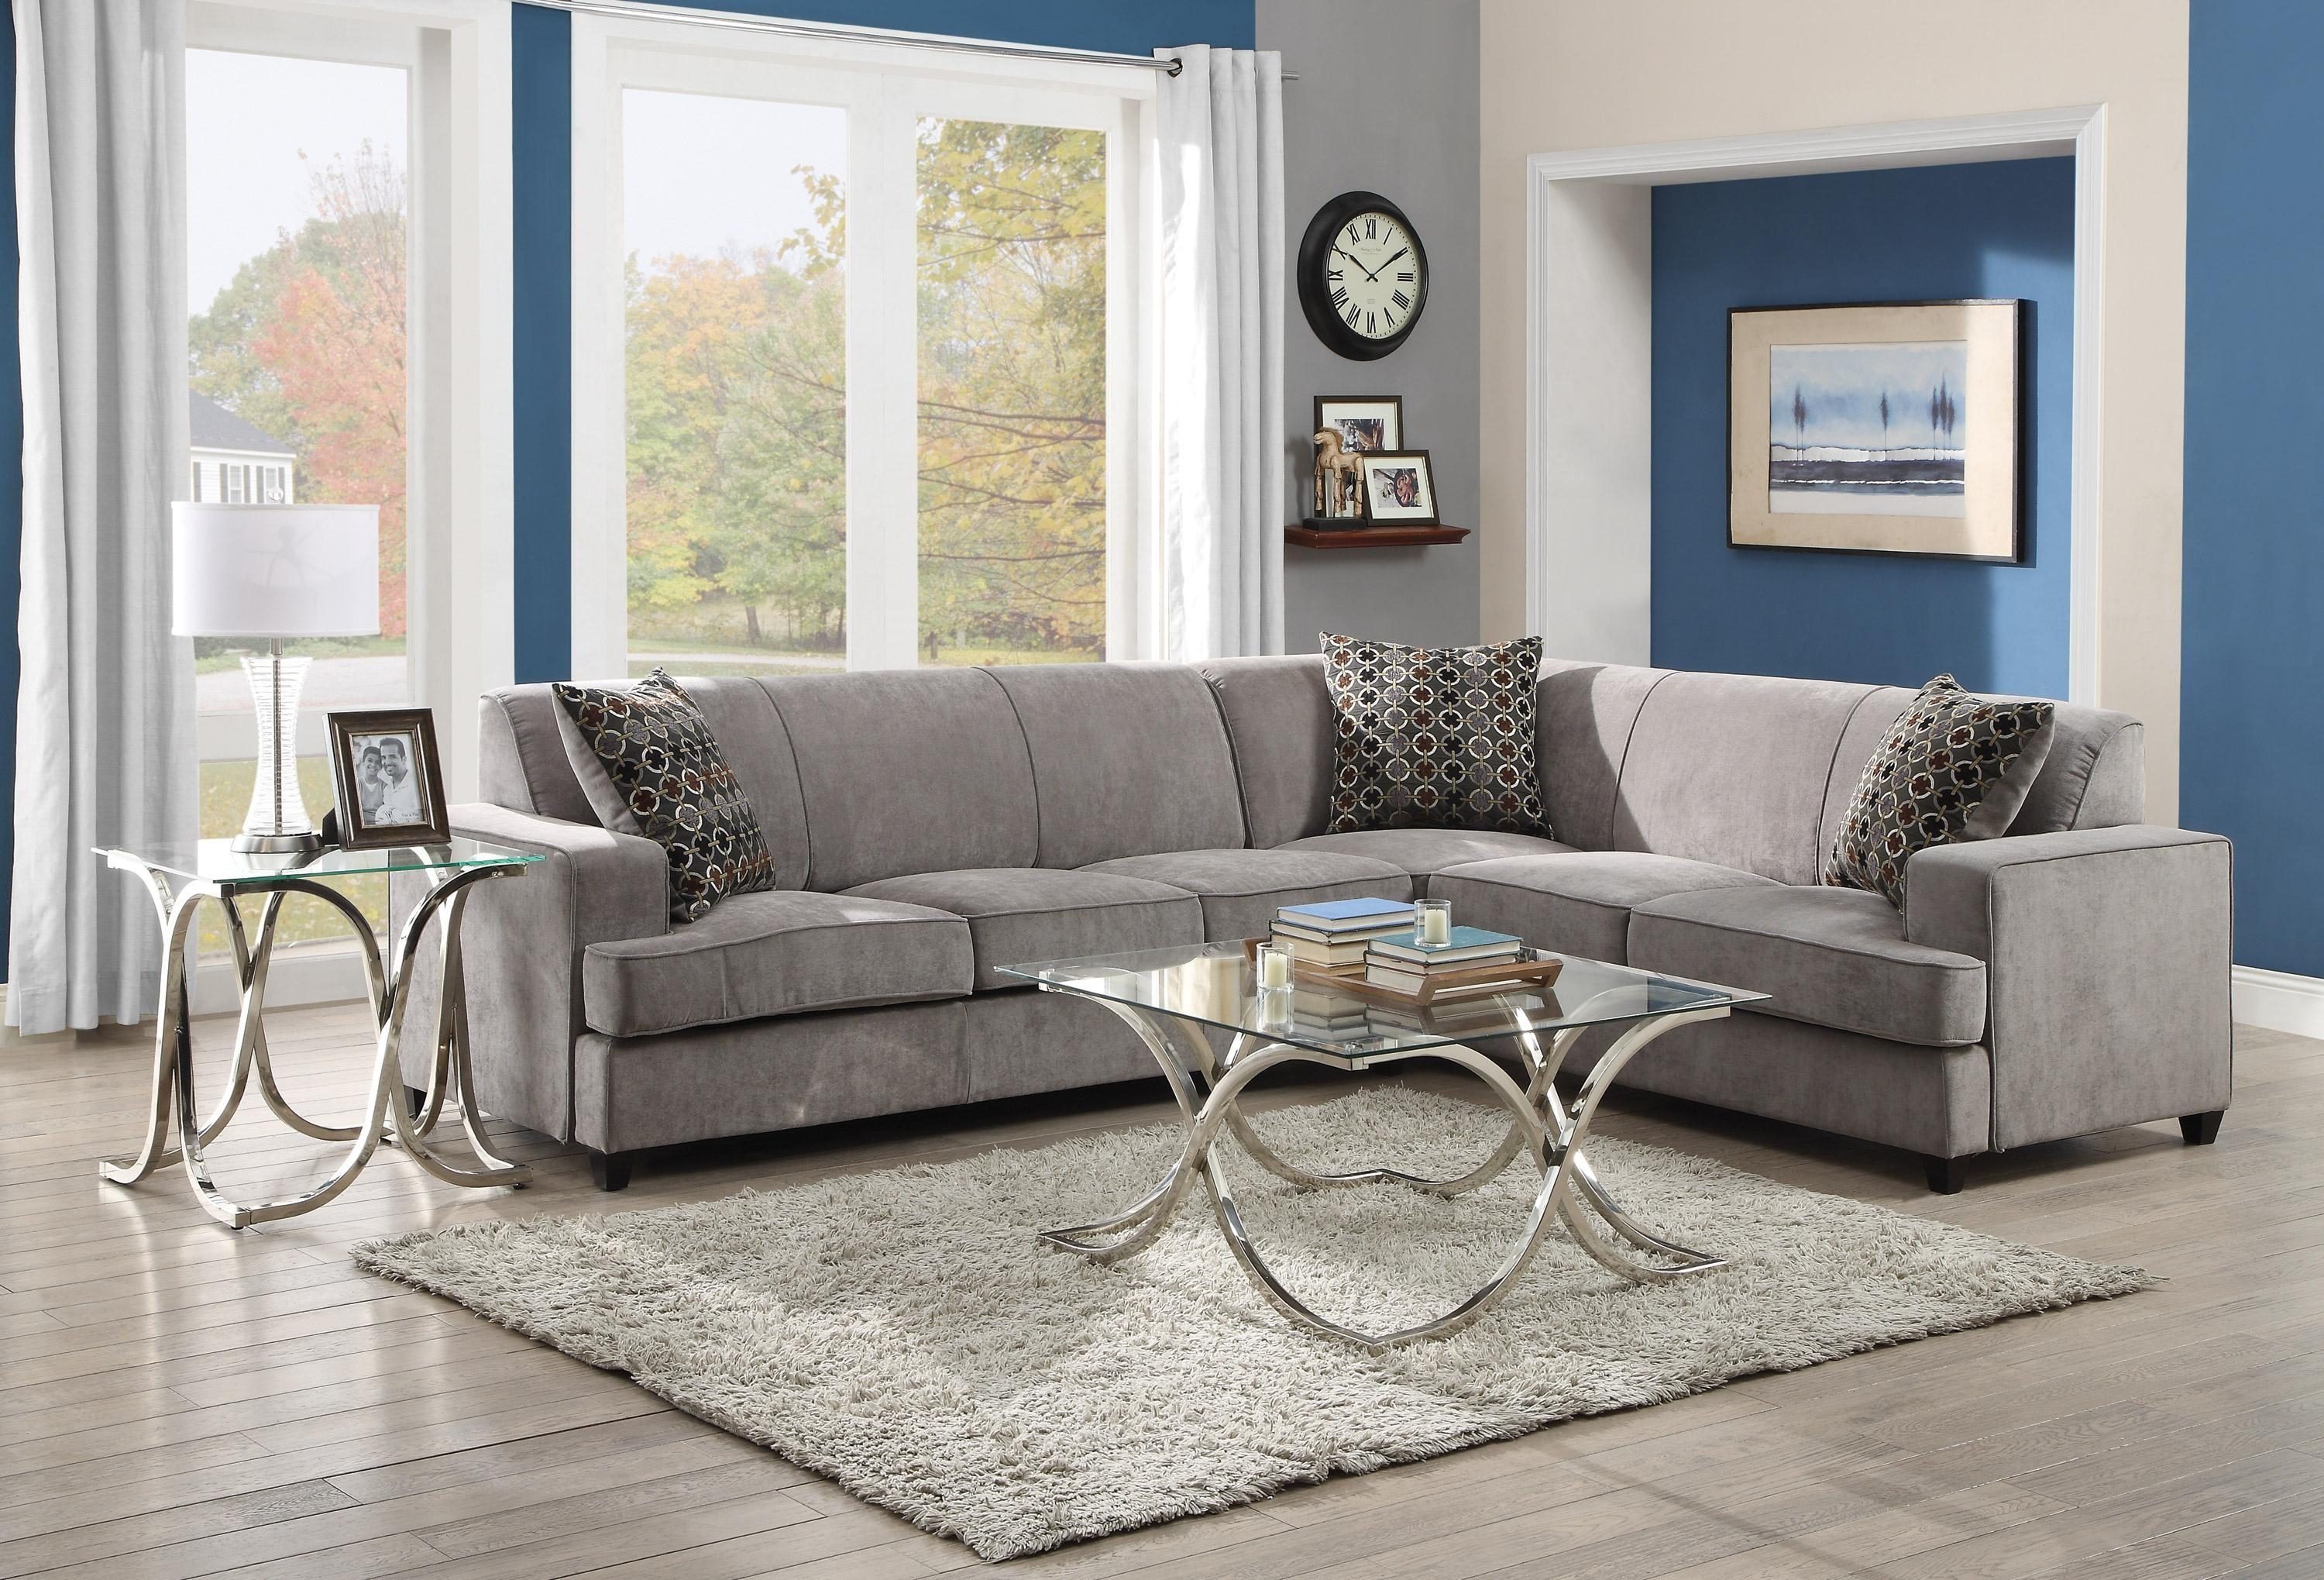 Furniture: Deep Sectional Sofa | Pottery Barn Sofa | Velvet With Room And Board Sectional Sofa (View 19 of 20)